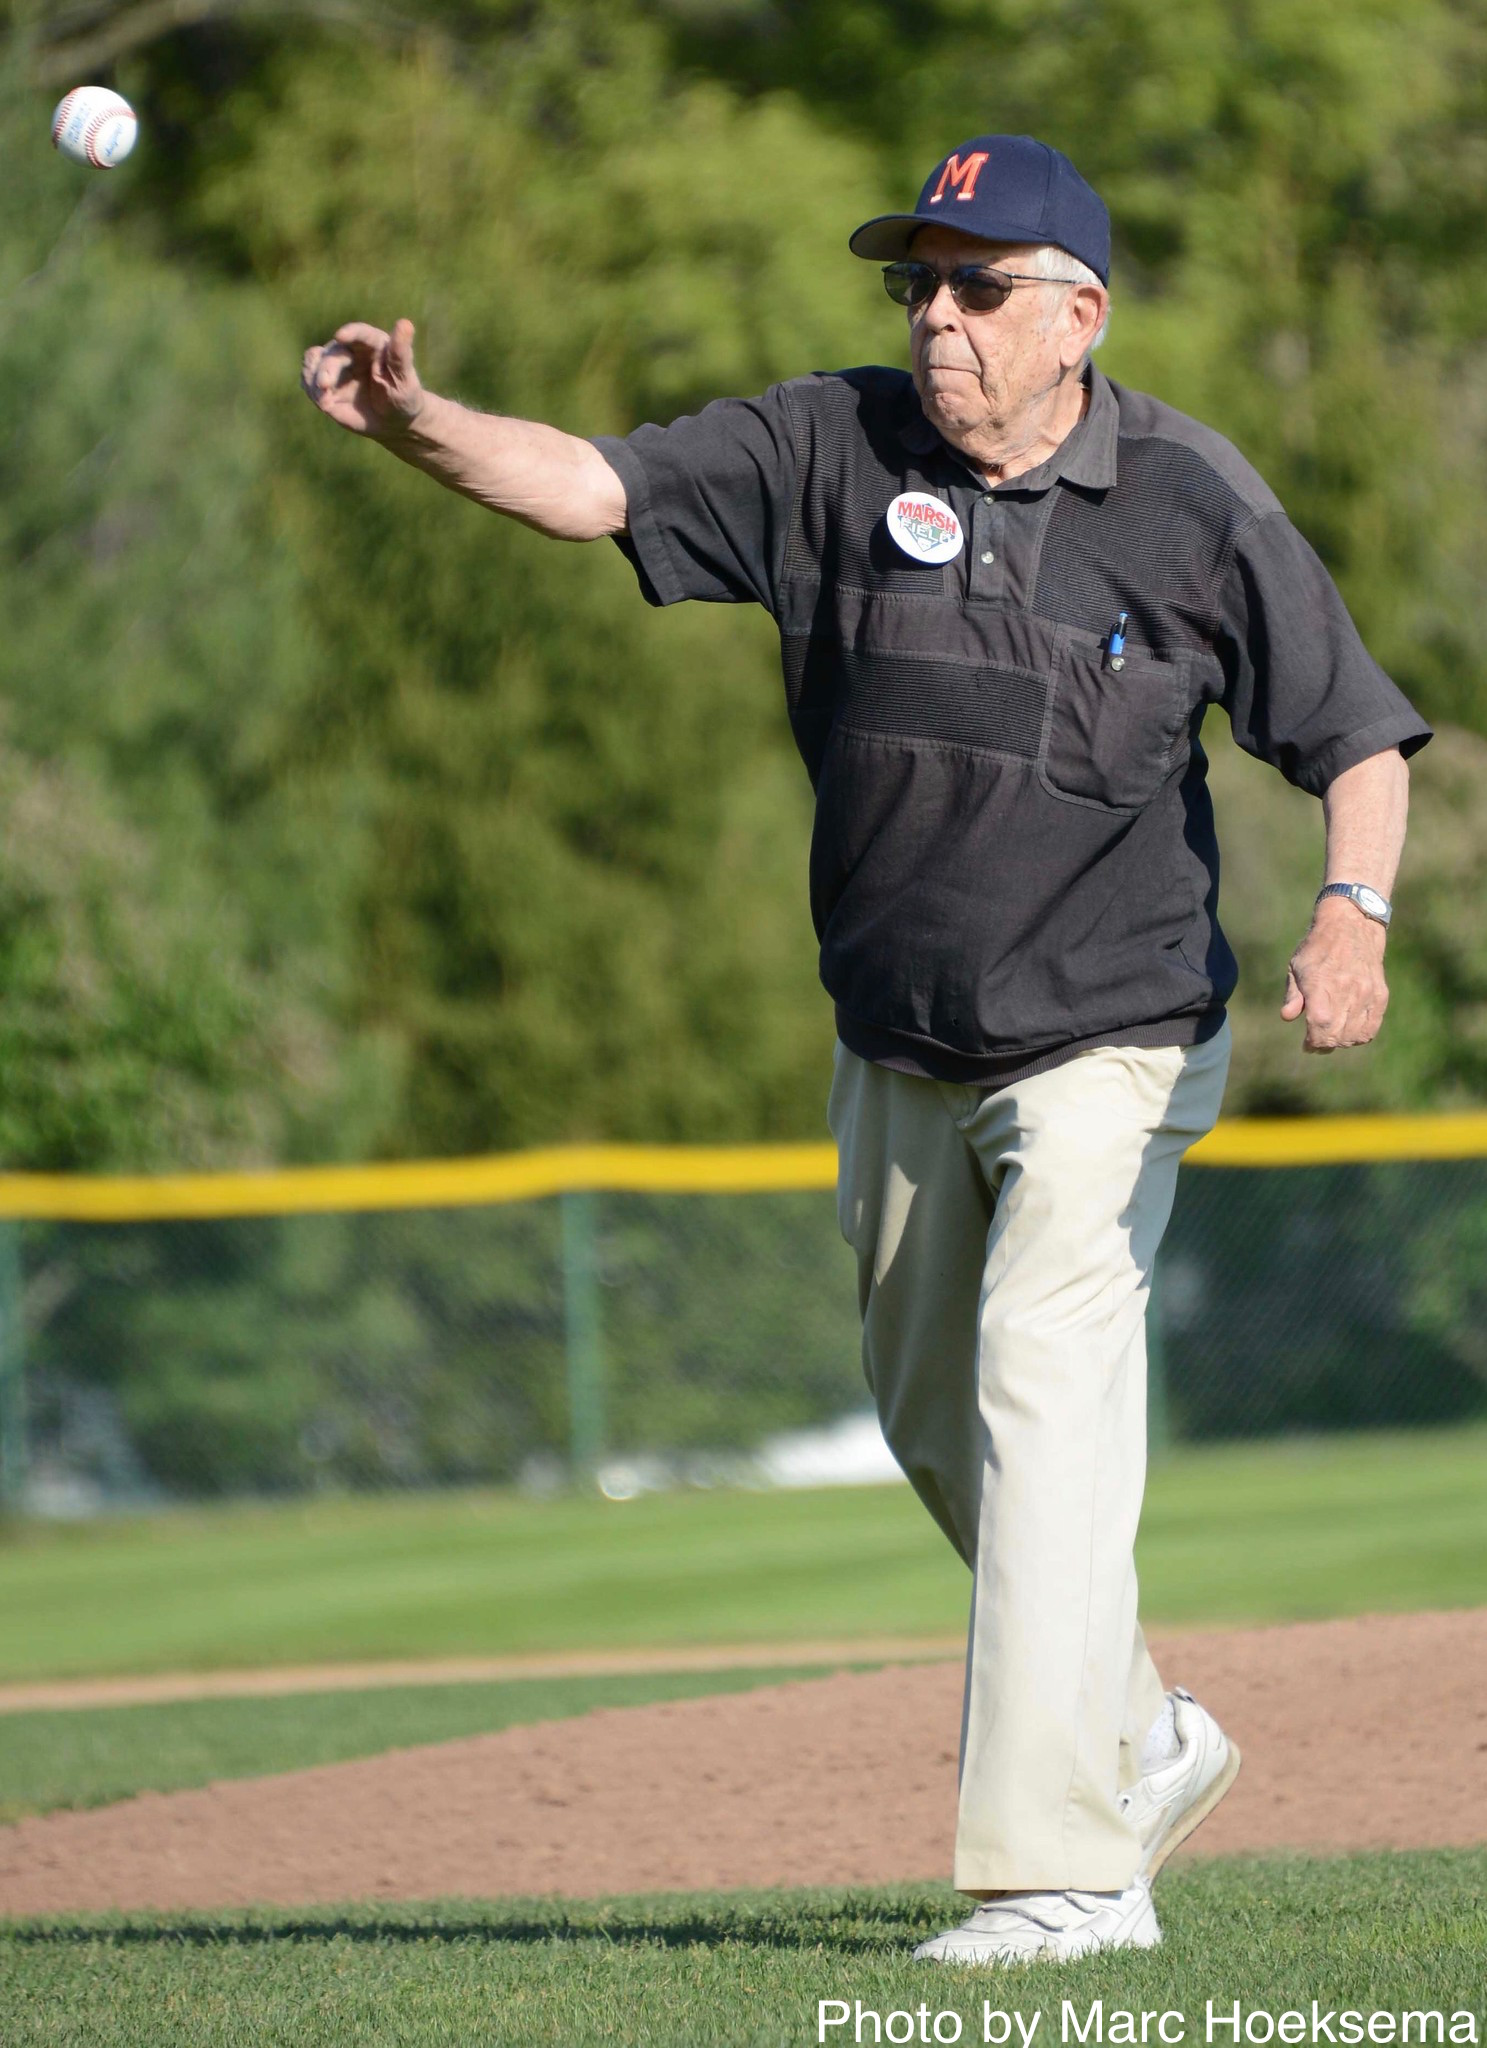 dcd287948e7 Last month I wrote an obituary/tribute for Marc Okkonen (that's him at  right, throwing out the first pitch at the 2016 home opener of his hometown  Muskegon ...